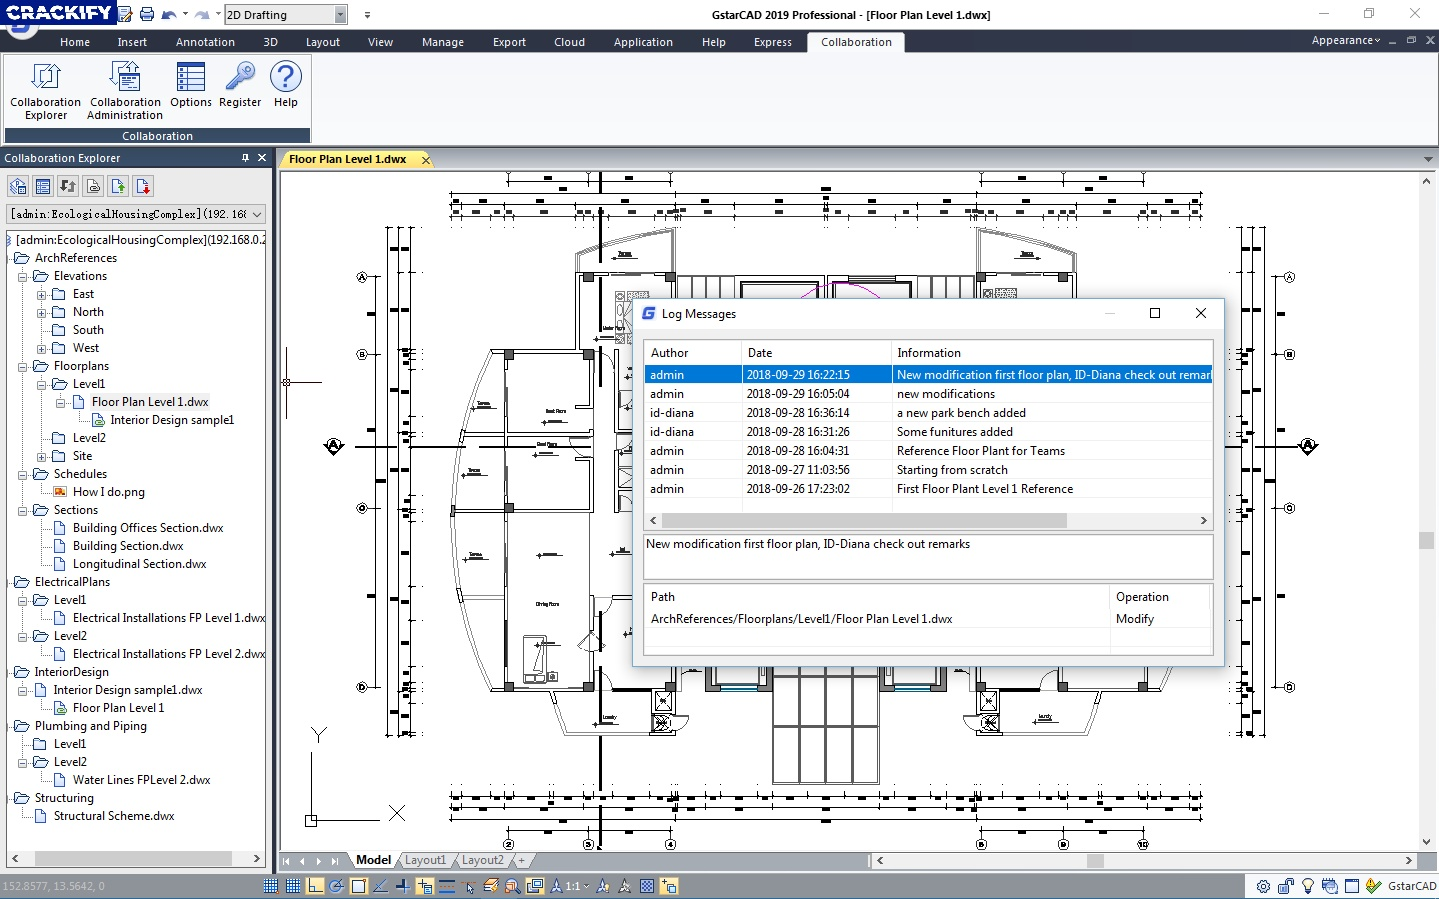 GstarCAD Professional Full Version Crack Free Download